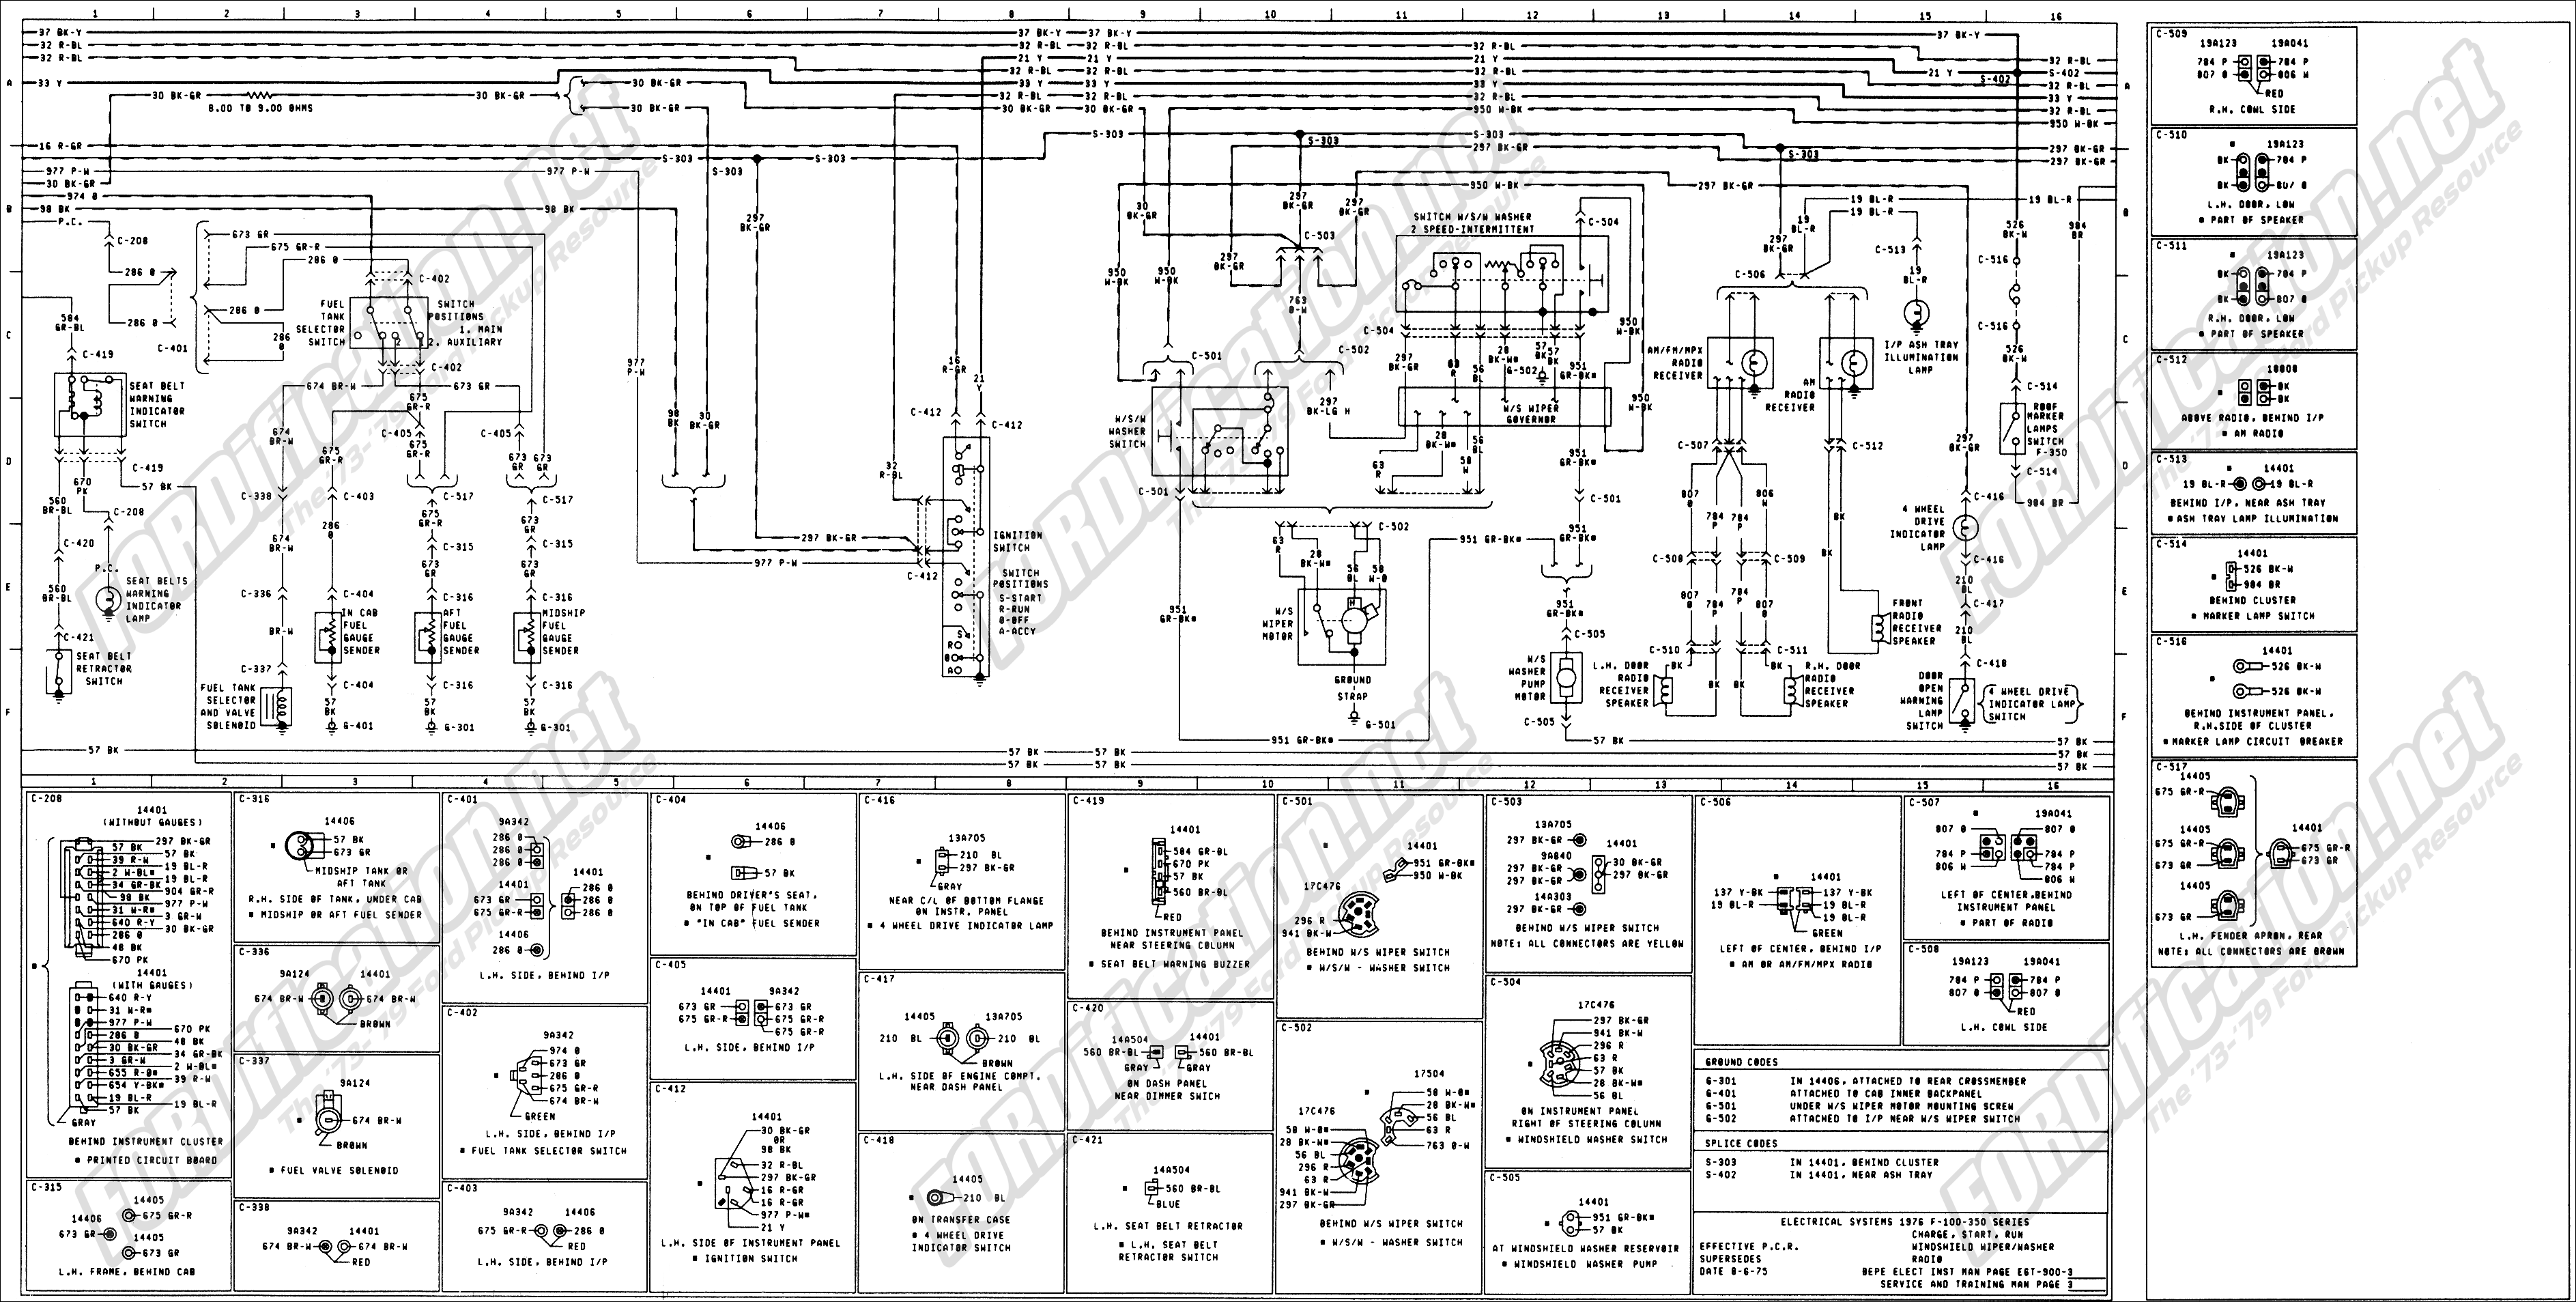 wiring_76master_3of9 1973 ford f250 wiring diagram ford f 150 starter wiring diagram wiring diagram for 2002 f250 starter at soozxer.org